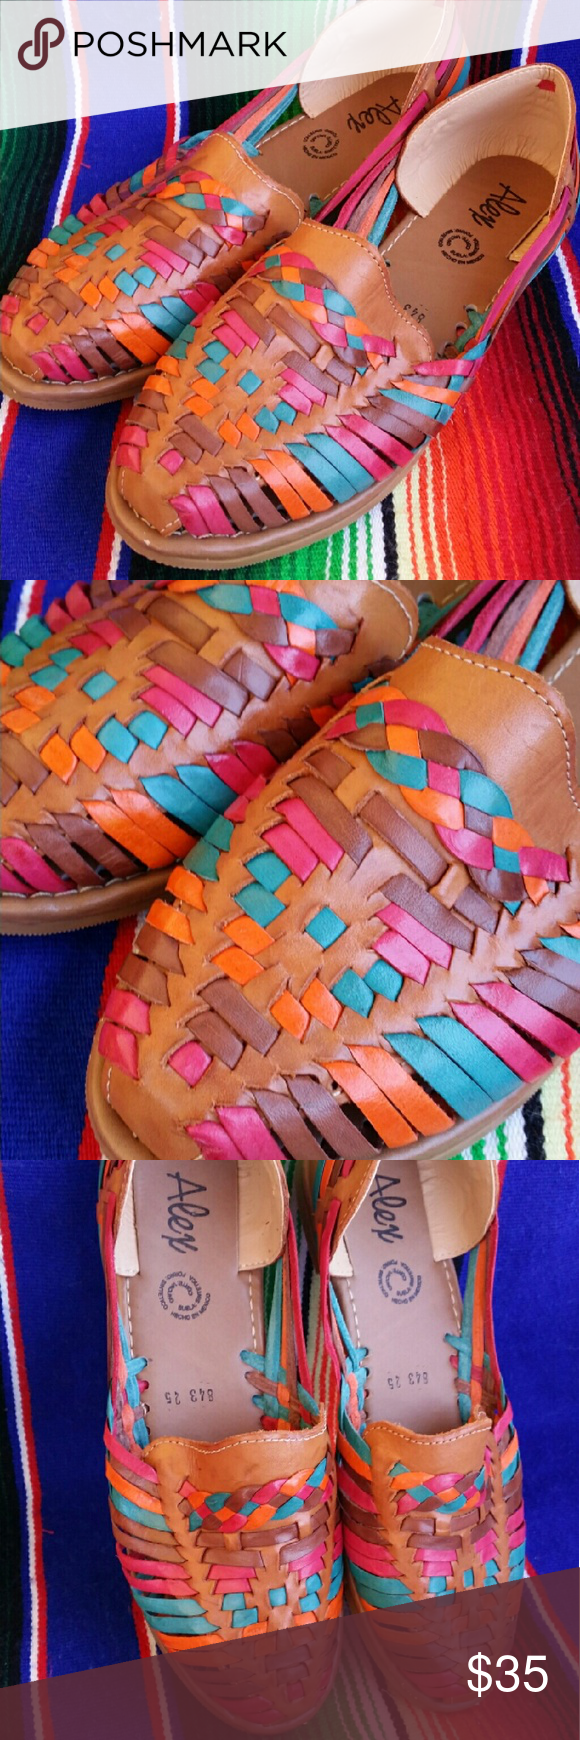 7f37a0a5d61 Colorful Womens Leather Huarache Sandals Size 7 Soft brown leather Pretty  colors even throughout Traditional Mexican sandals Handmade and never been  worn ...